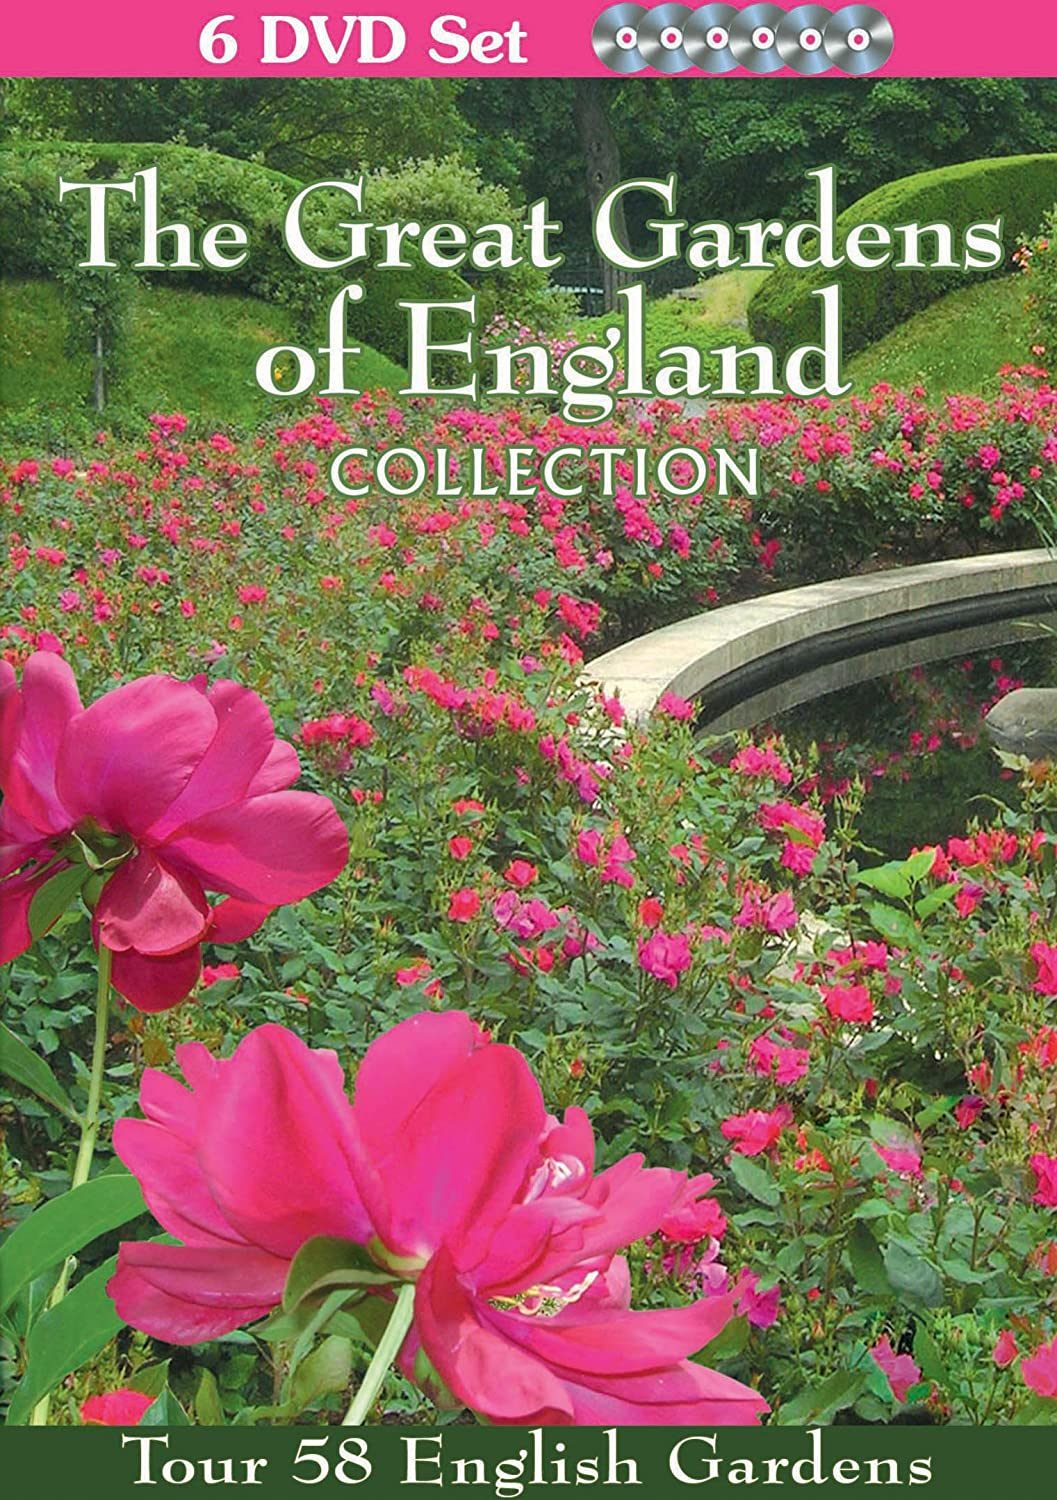 Amazoncom The Great Gardens of England Collection6 DVD SetTour